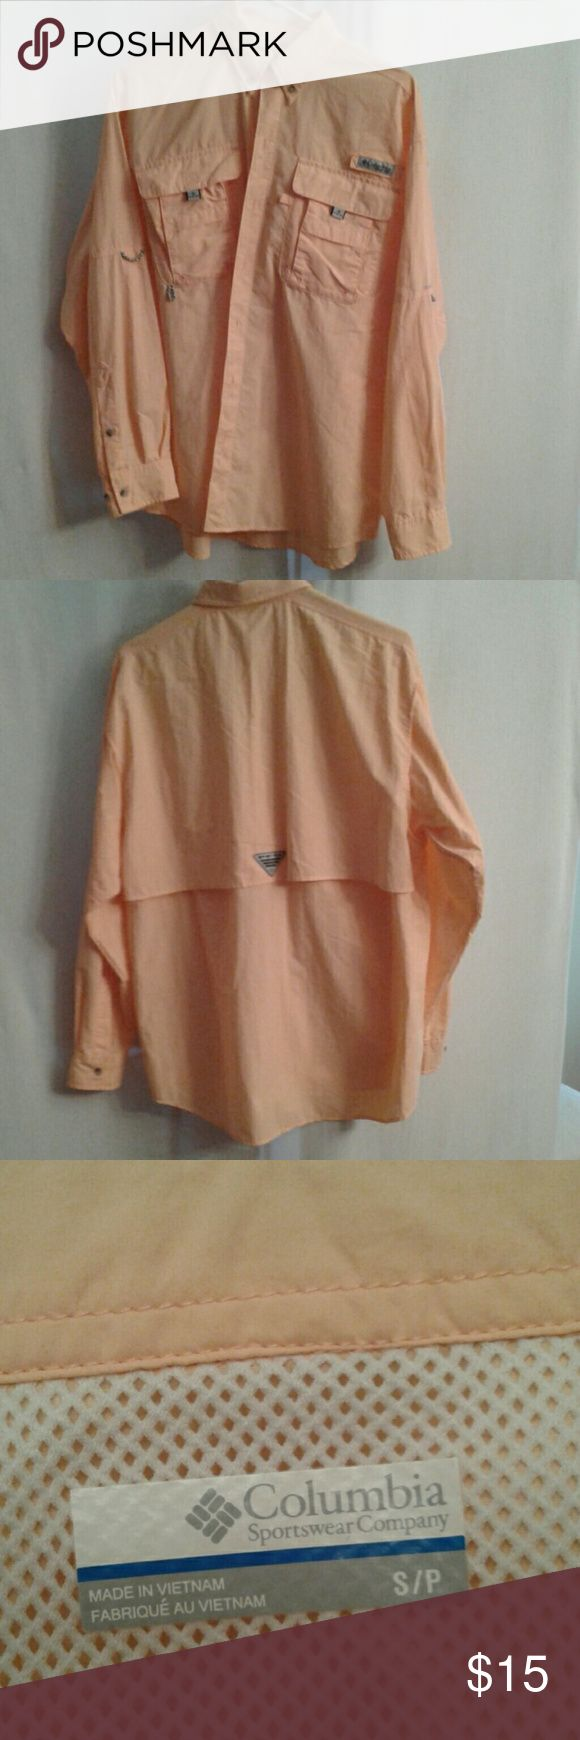 Columbia PFG long sleeve shirt sz S Orange sherbet, Bahama II, long sleeve, button down, quick-drying nylon, relaxed fit, angler's shirt in EUC.  Velcro close pockets and mesh-lined cape vent. Double button cuffs to convert to short sleeve. Built in UPF 30 sun protection and hidden shoulder vents. Columbia PFG Shirts Casual Button Down Shirts